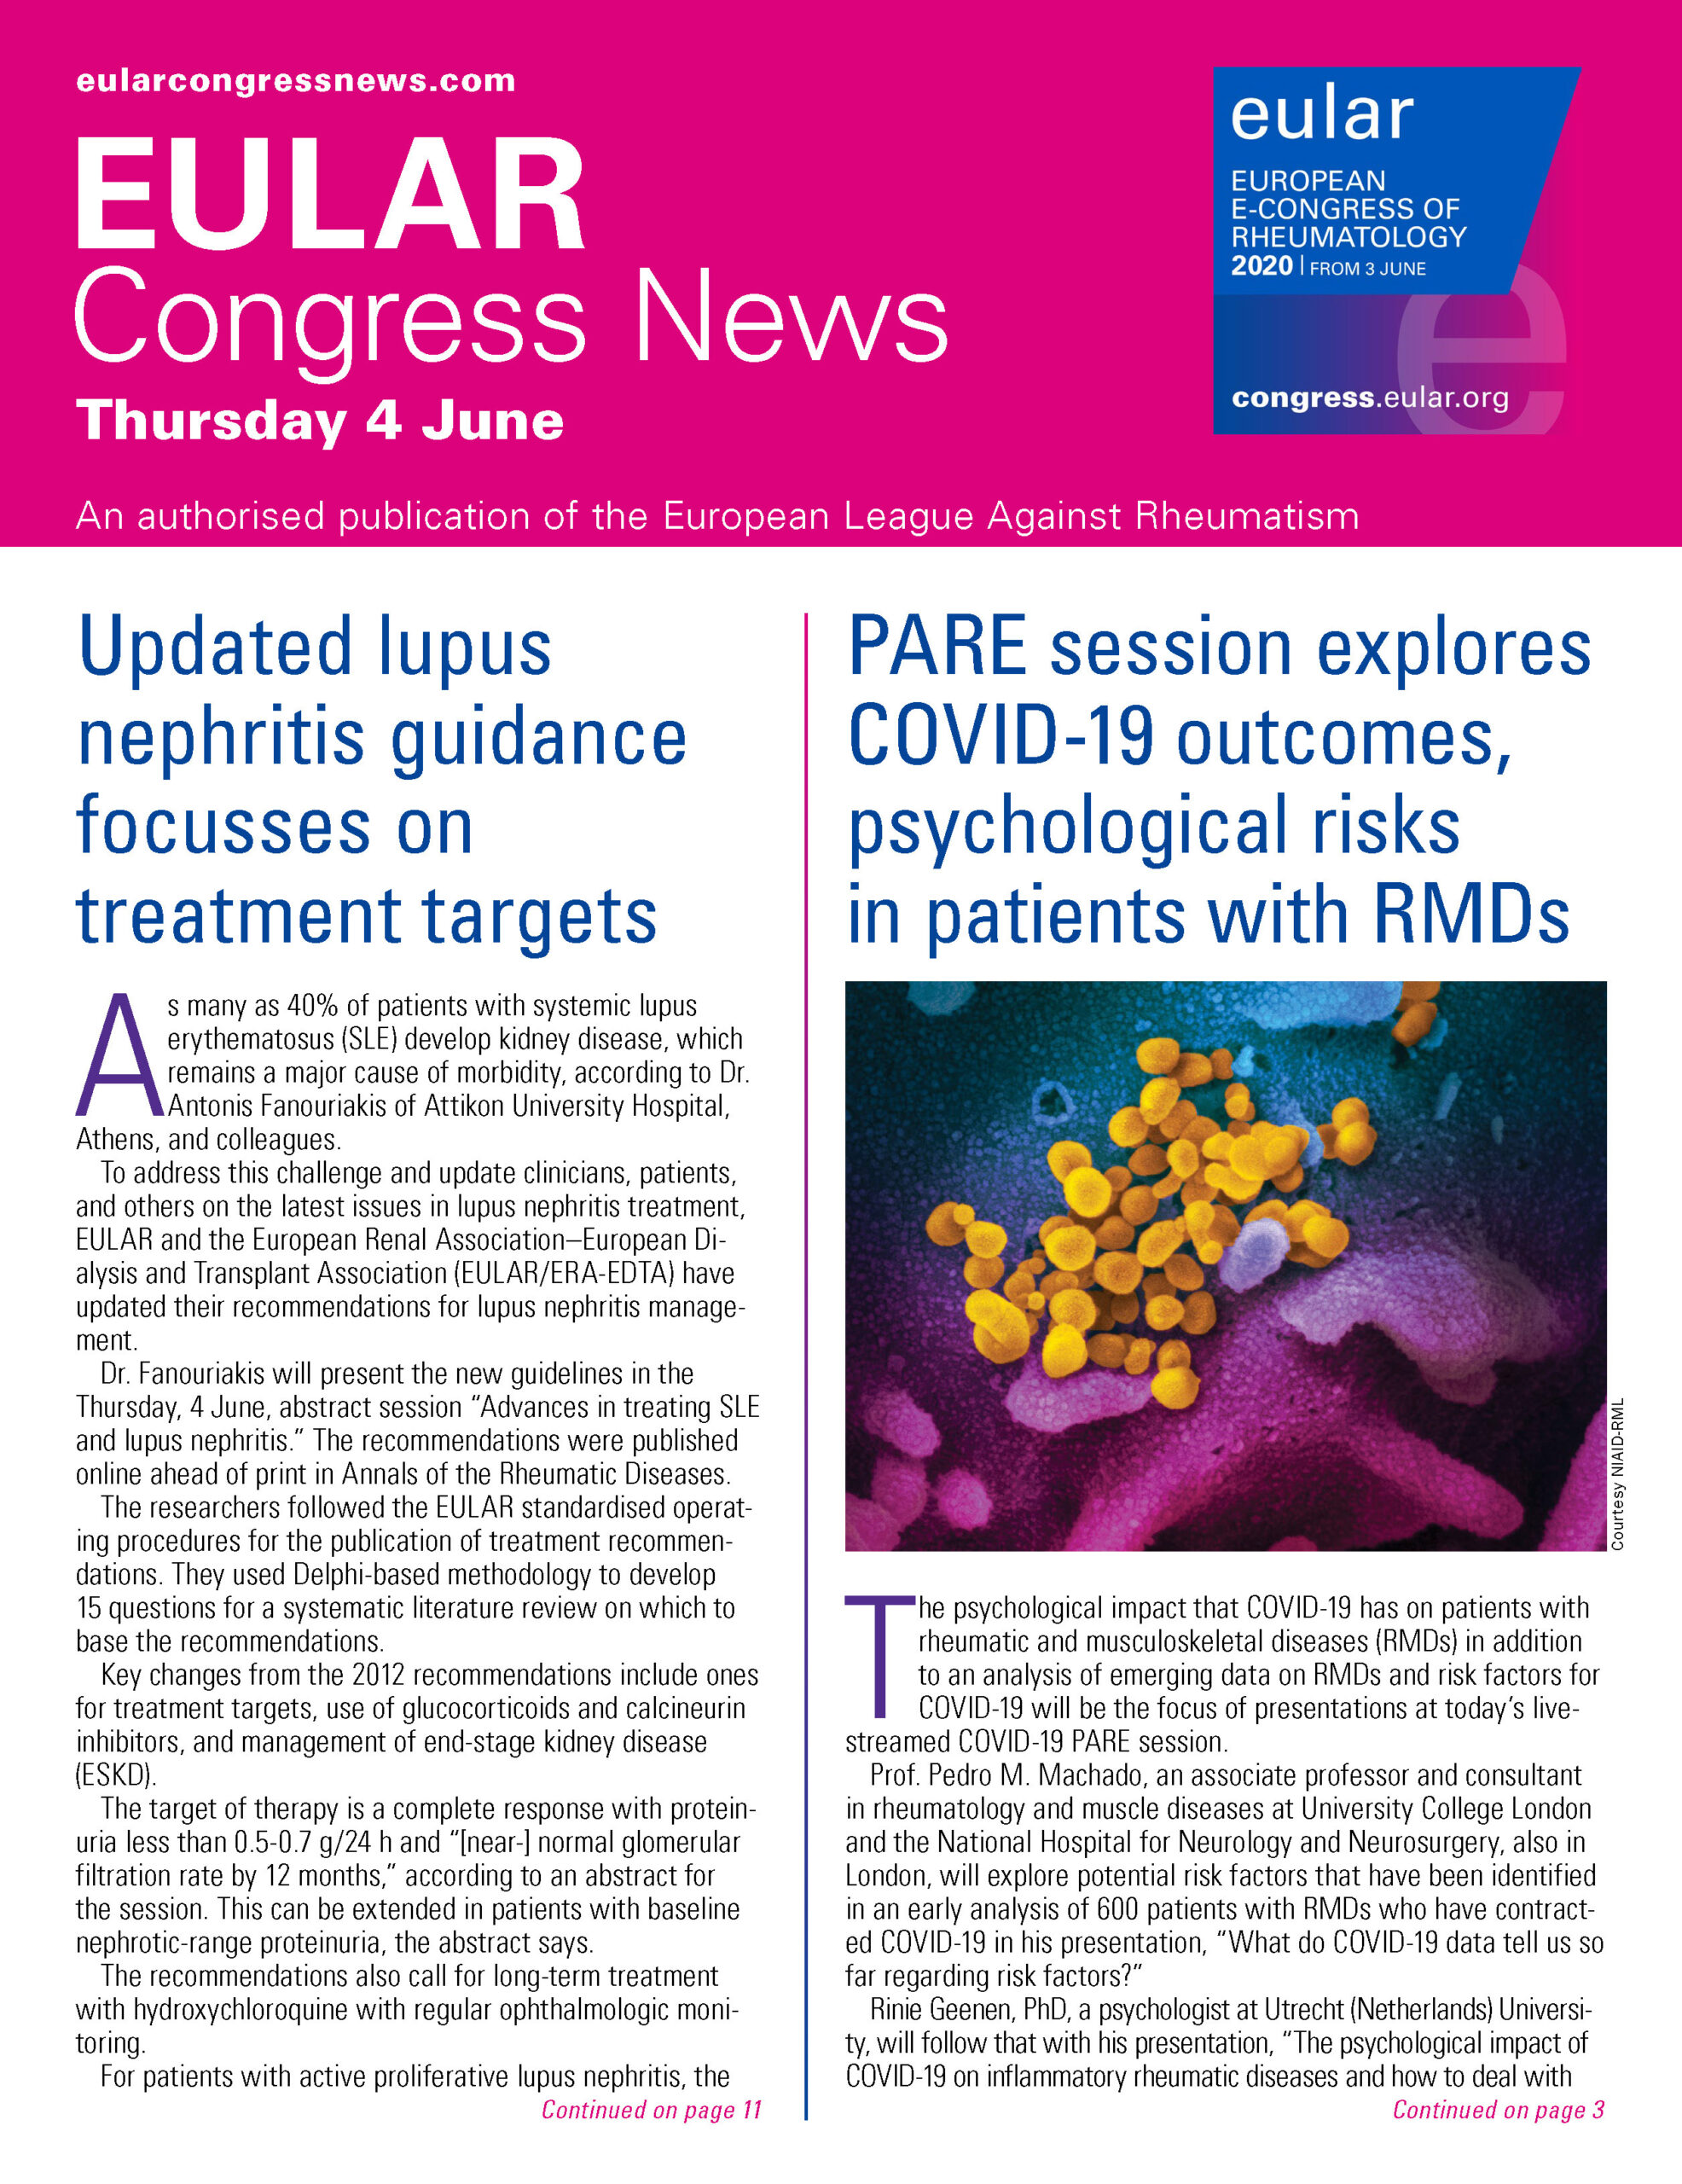 EULAR Congress News: Thursday - 4 June Edition